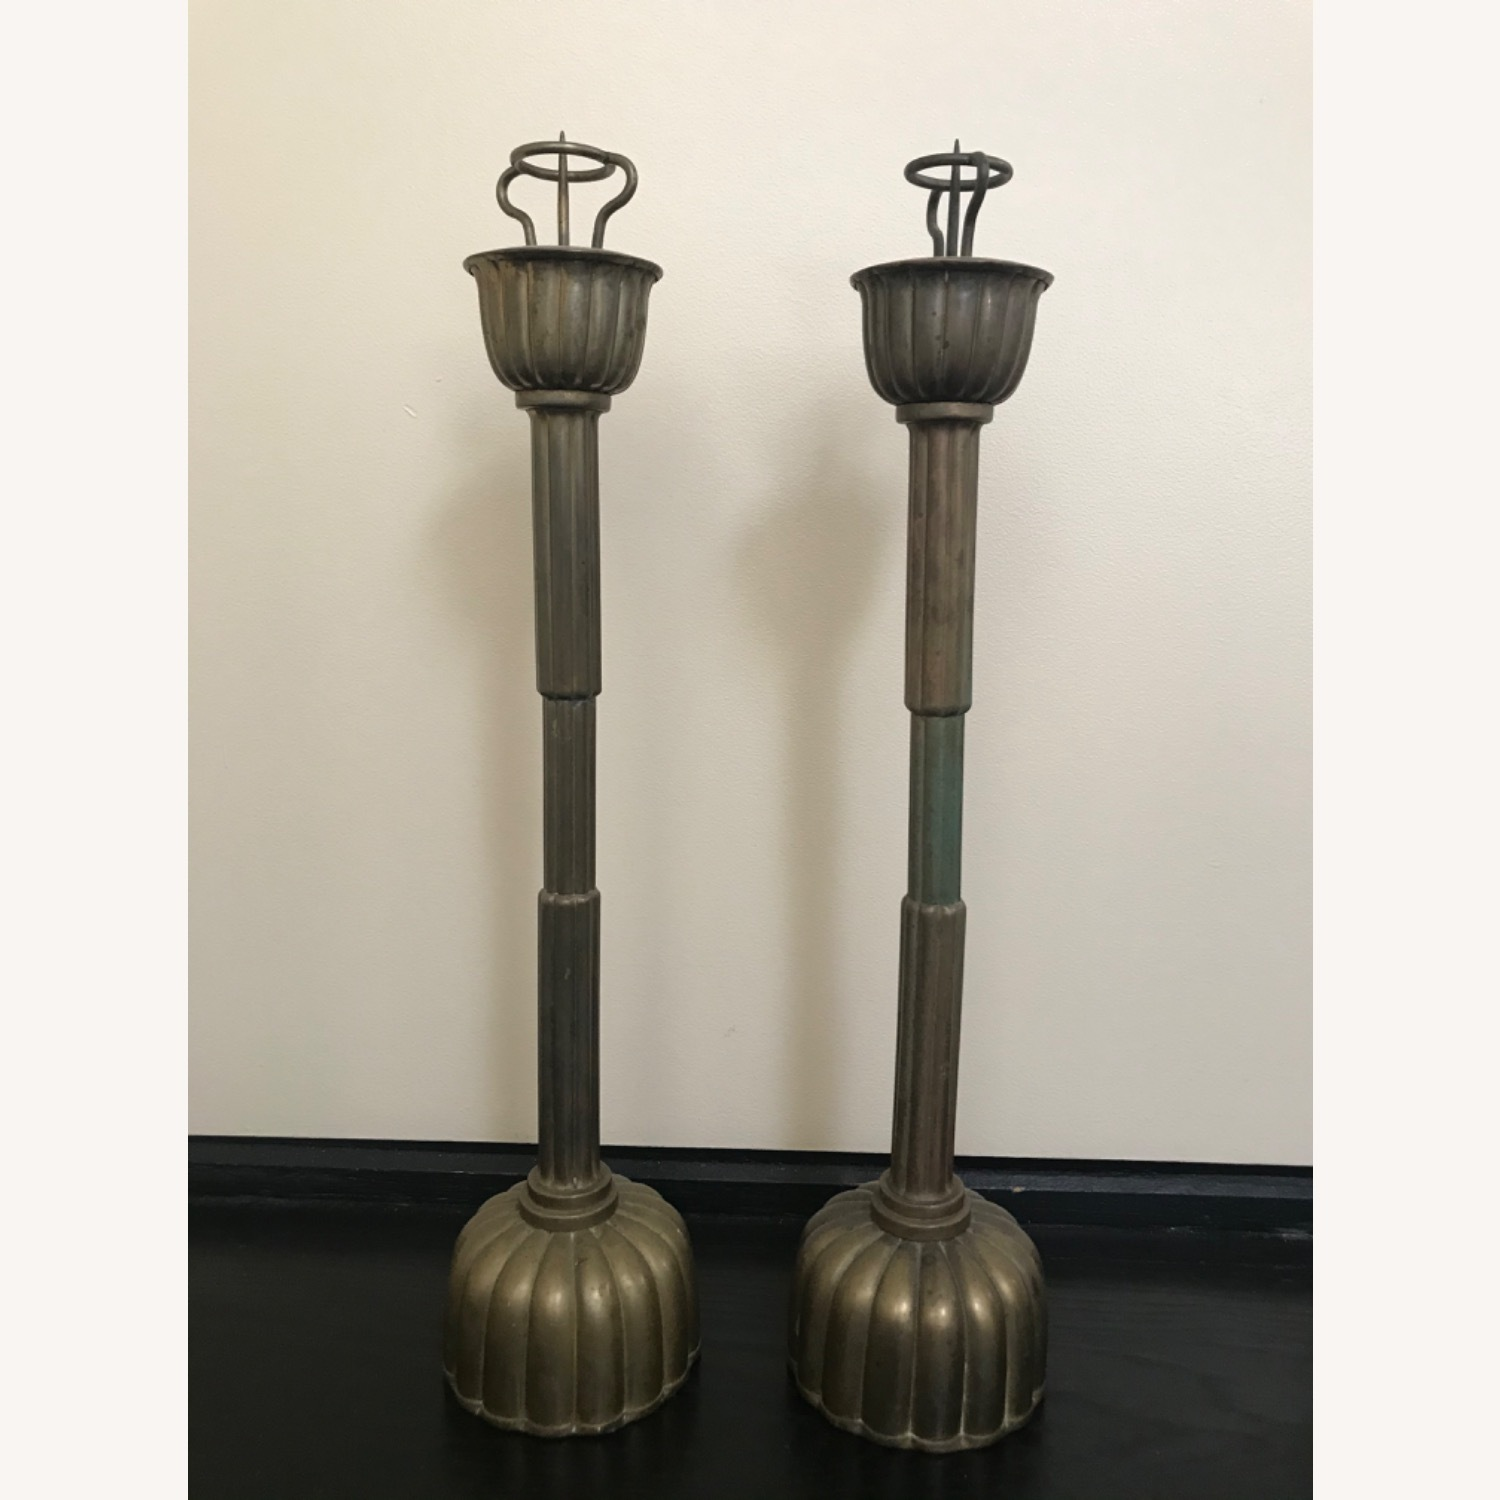 Antique Japanese Candlestick Holders - image-2